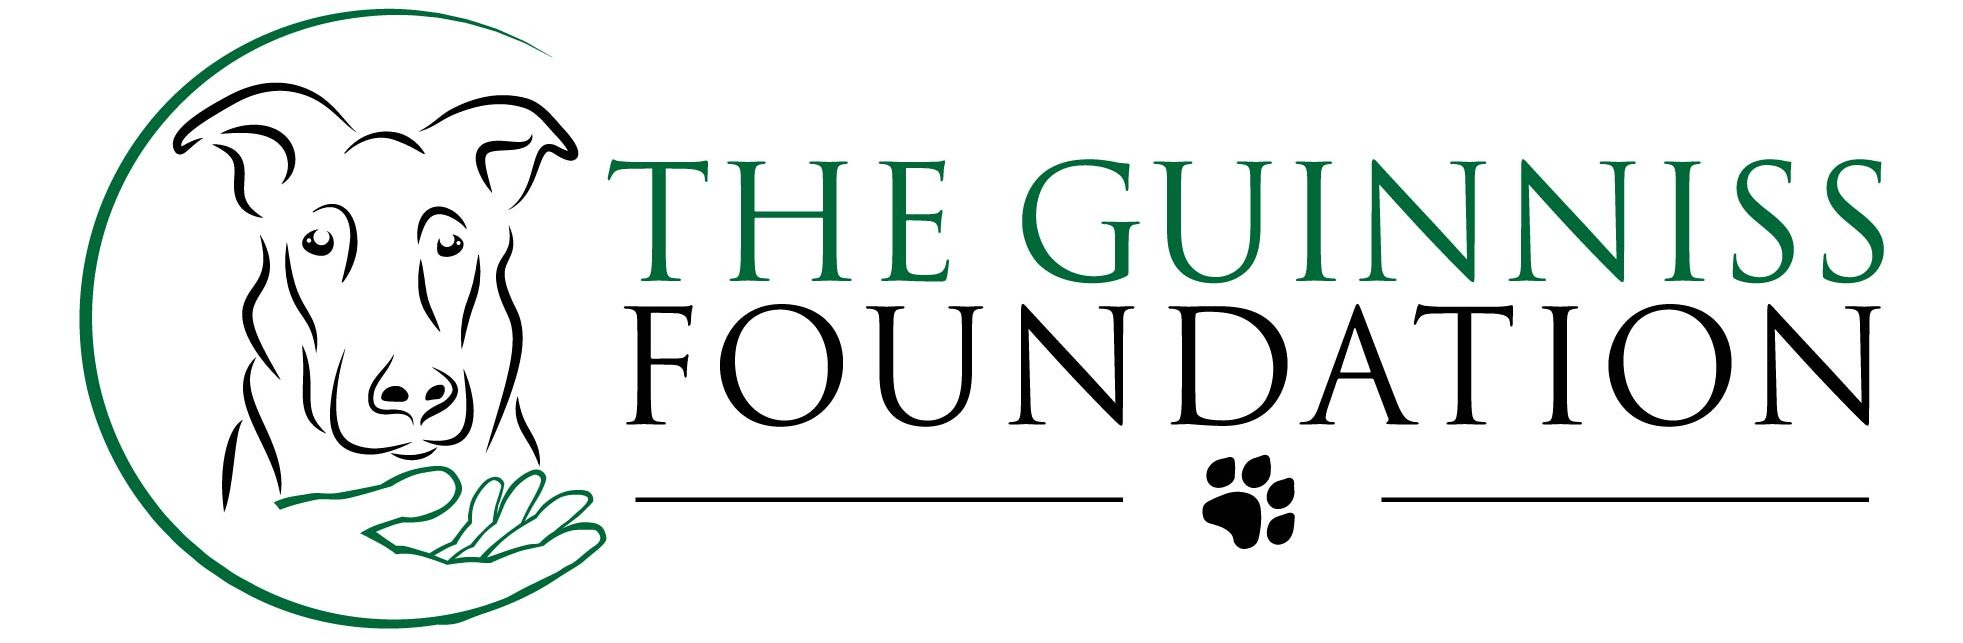 The Guinniss Foundation